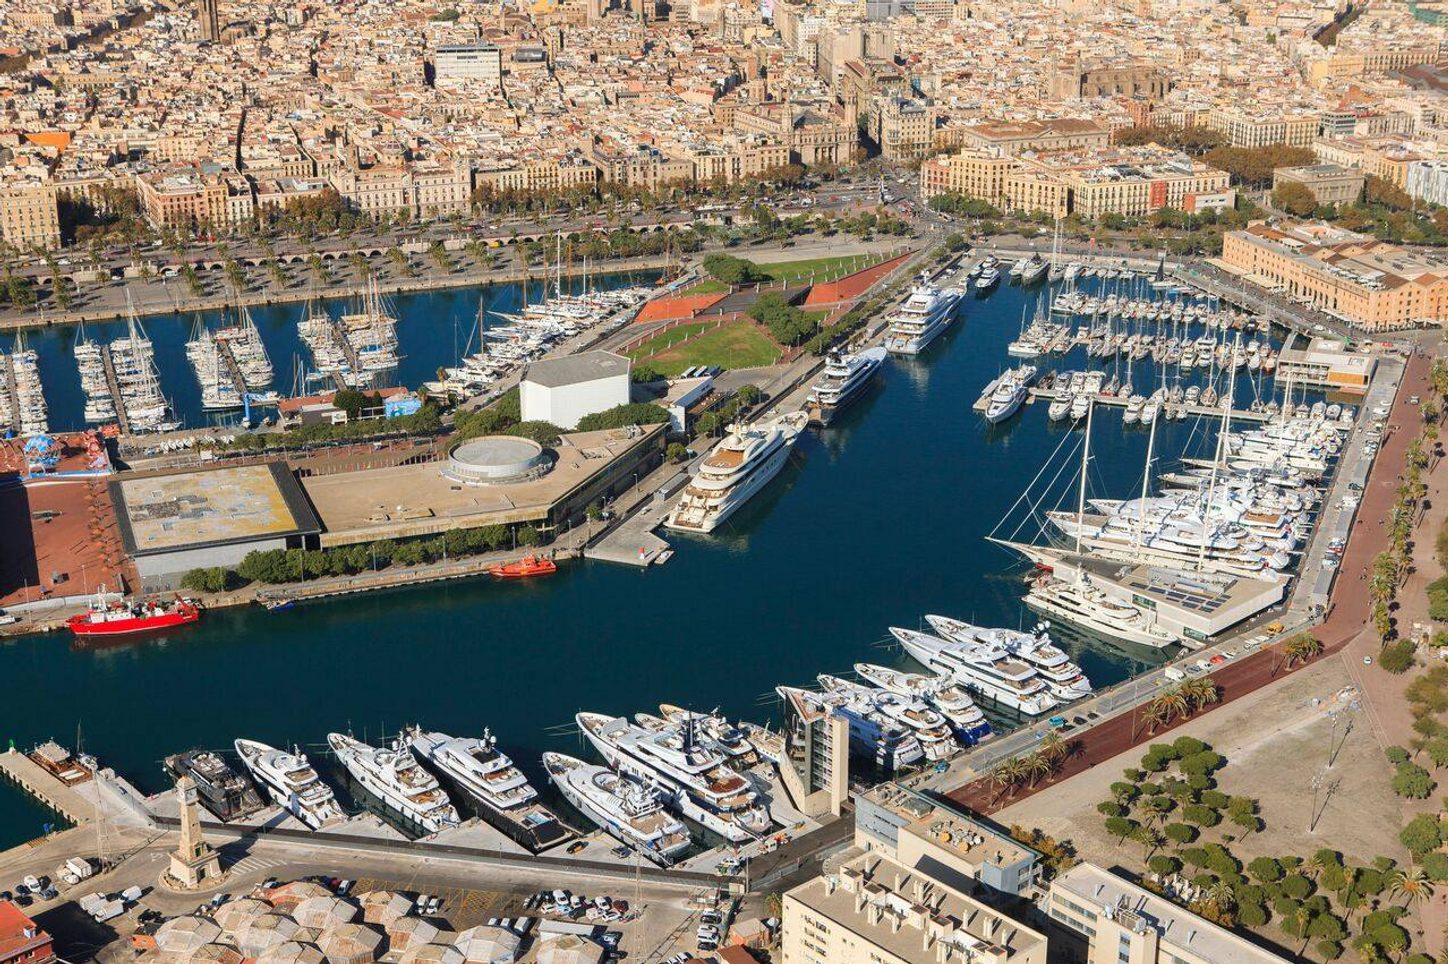 aerial view of OneOcean Port Vell in Barcelona, host of The Superyacht Show 2018